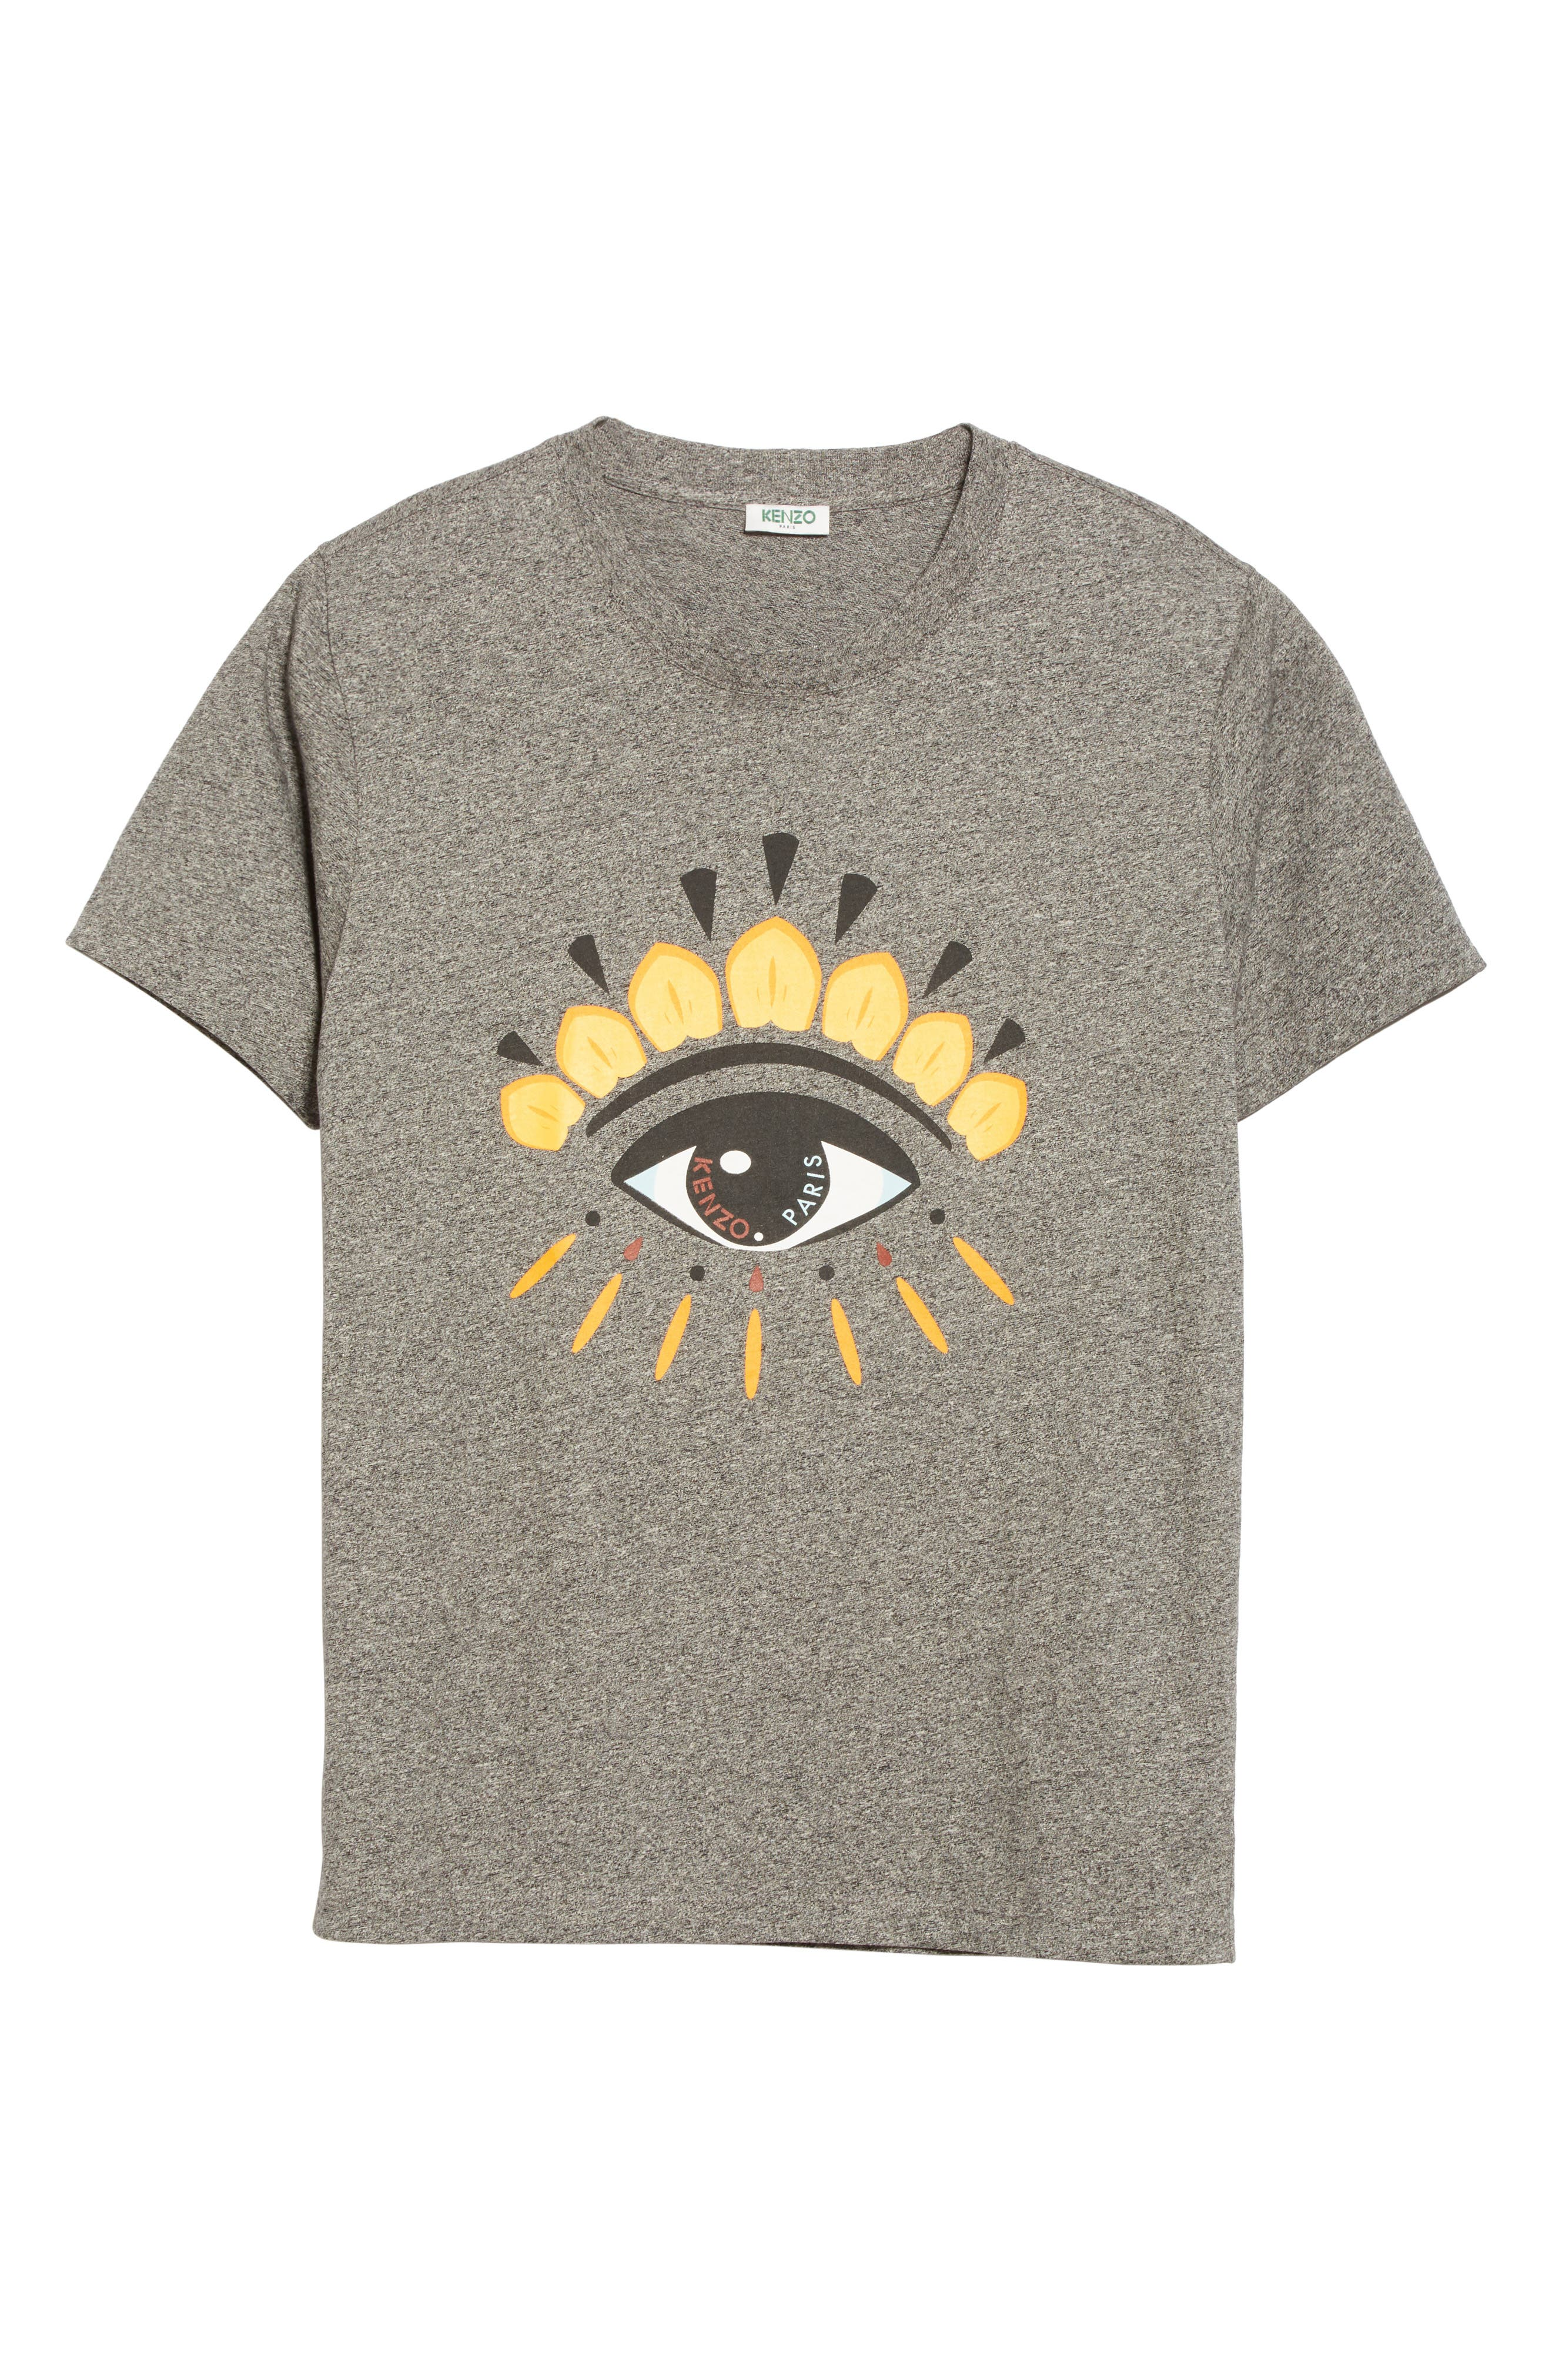 Embroidered Eye T-Shirt,                             Alternate thumbnail 6, color,                             Antracite